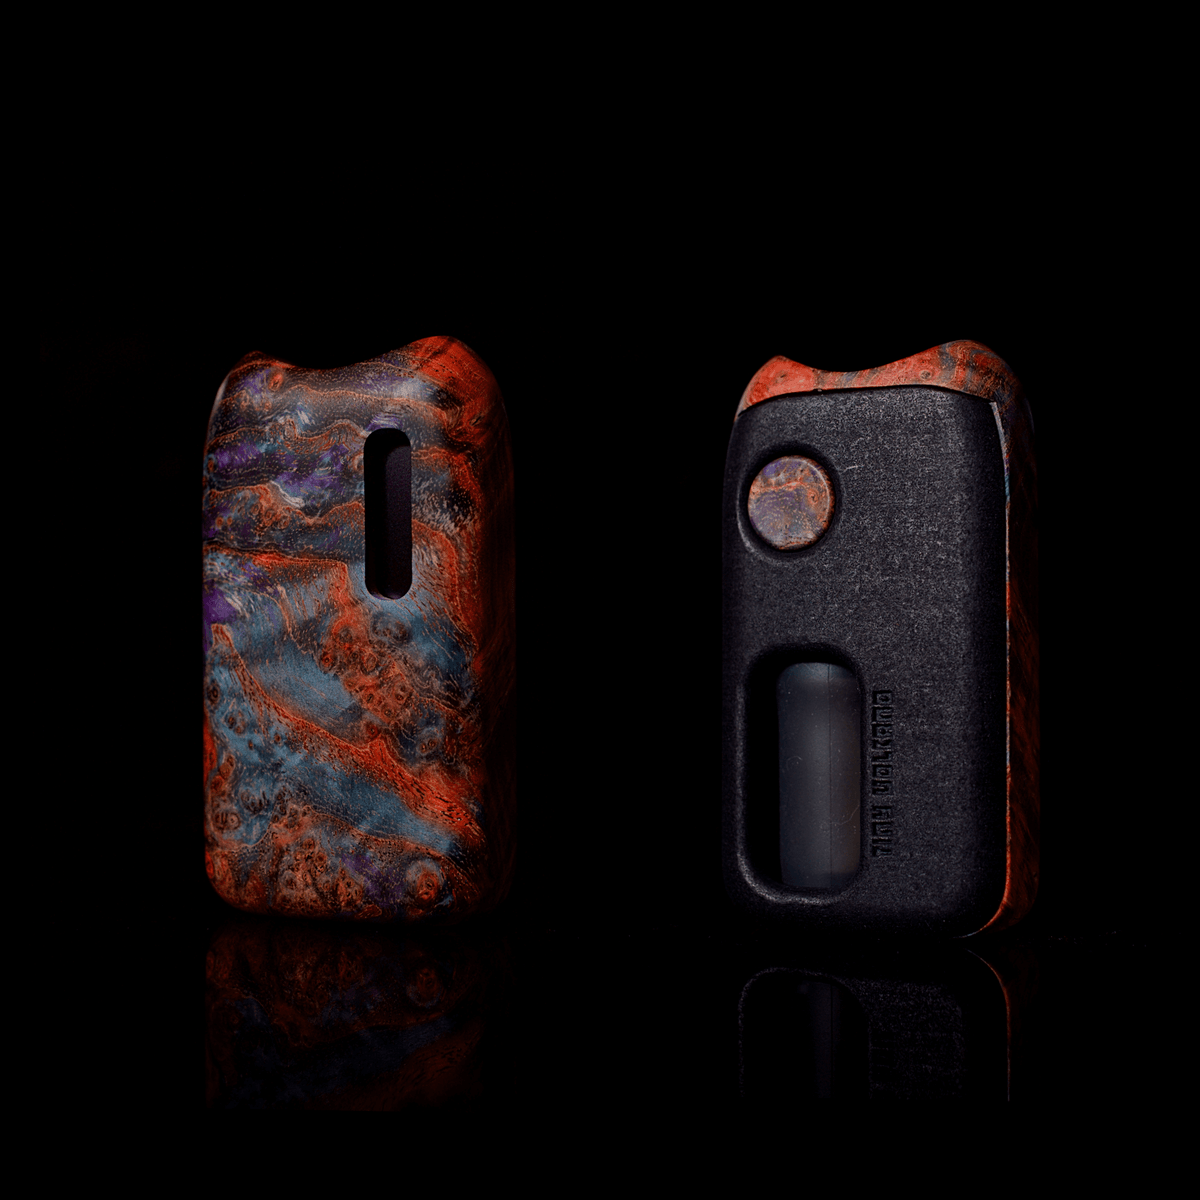 Image of TinyStab LE Regulated Squonk Mod